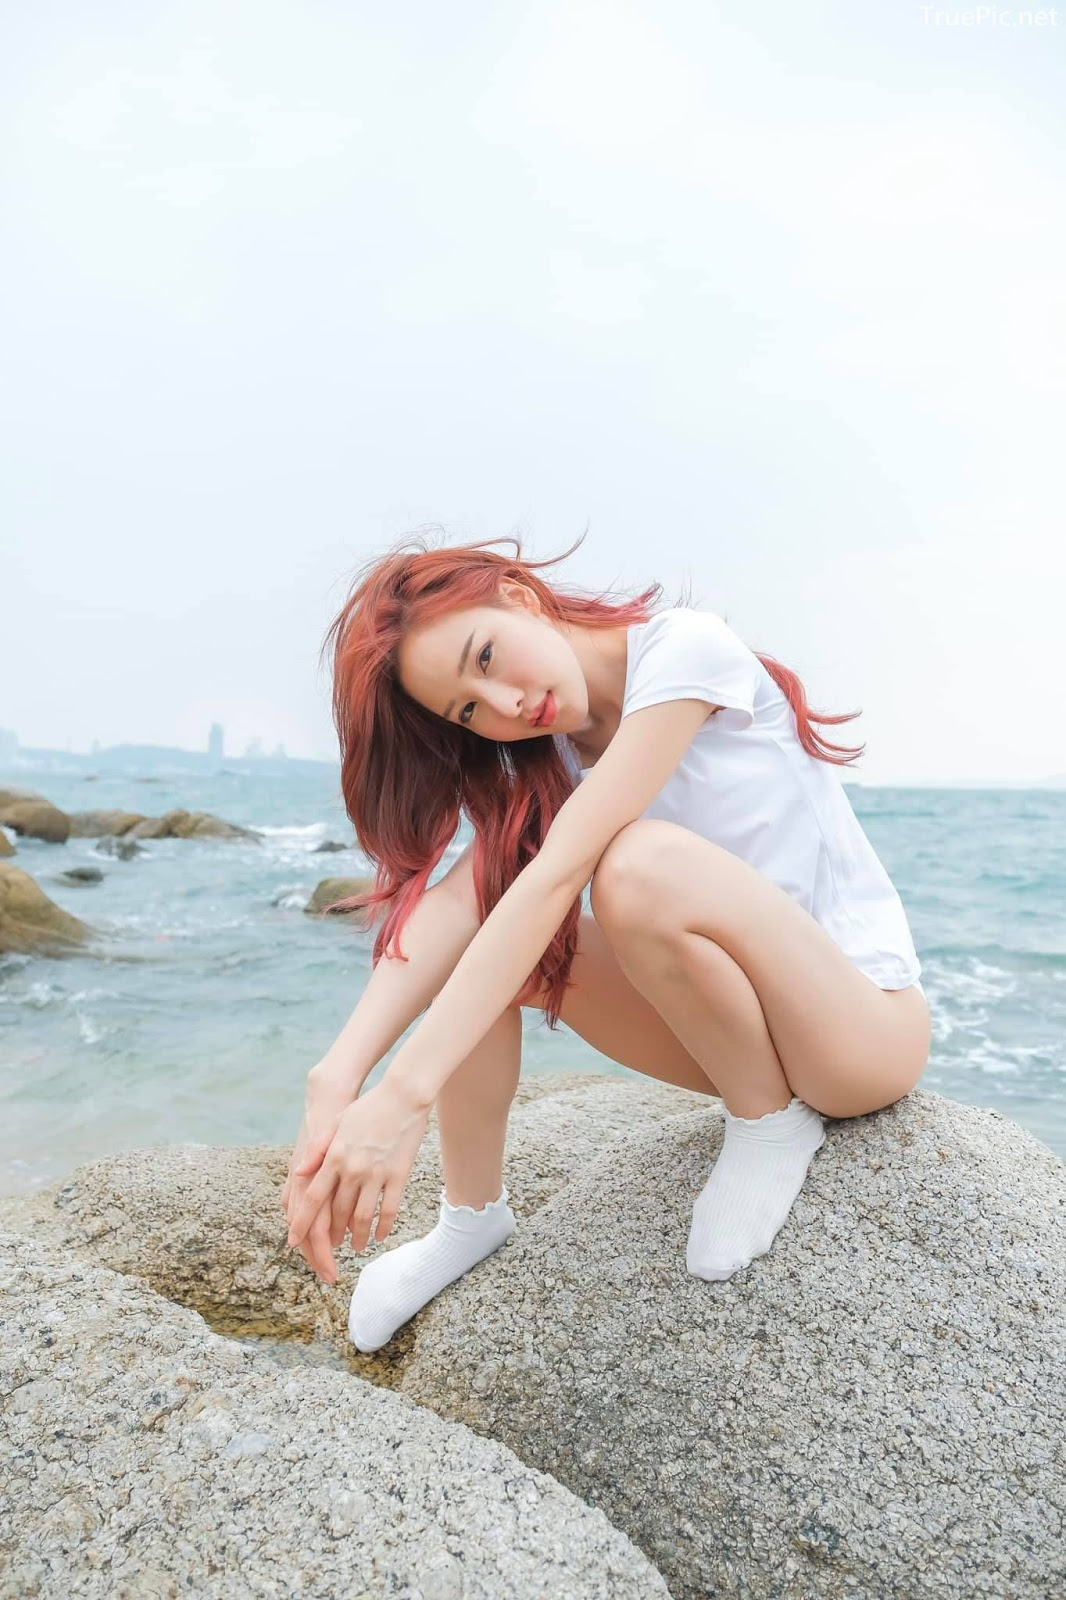 Thailand sexy model Arys Nam-in (Arysiacara) – The goddess of the sea - Picture 1